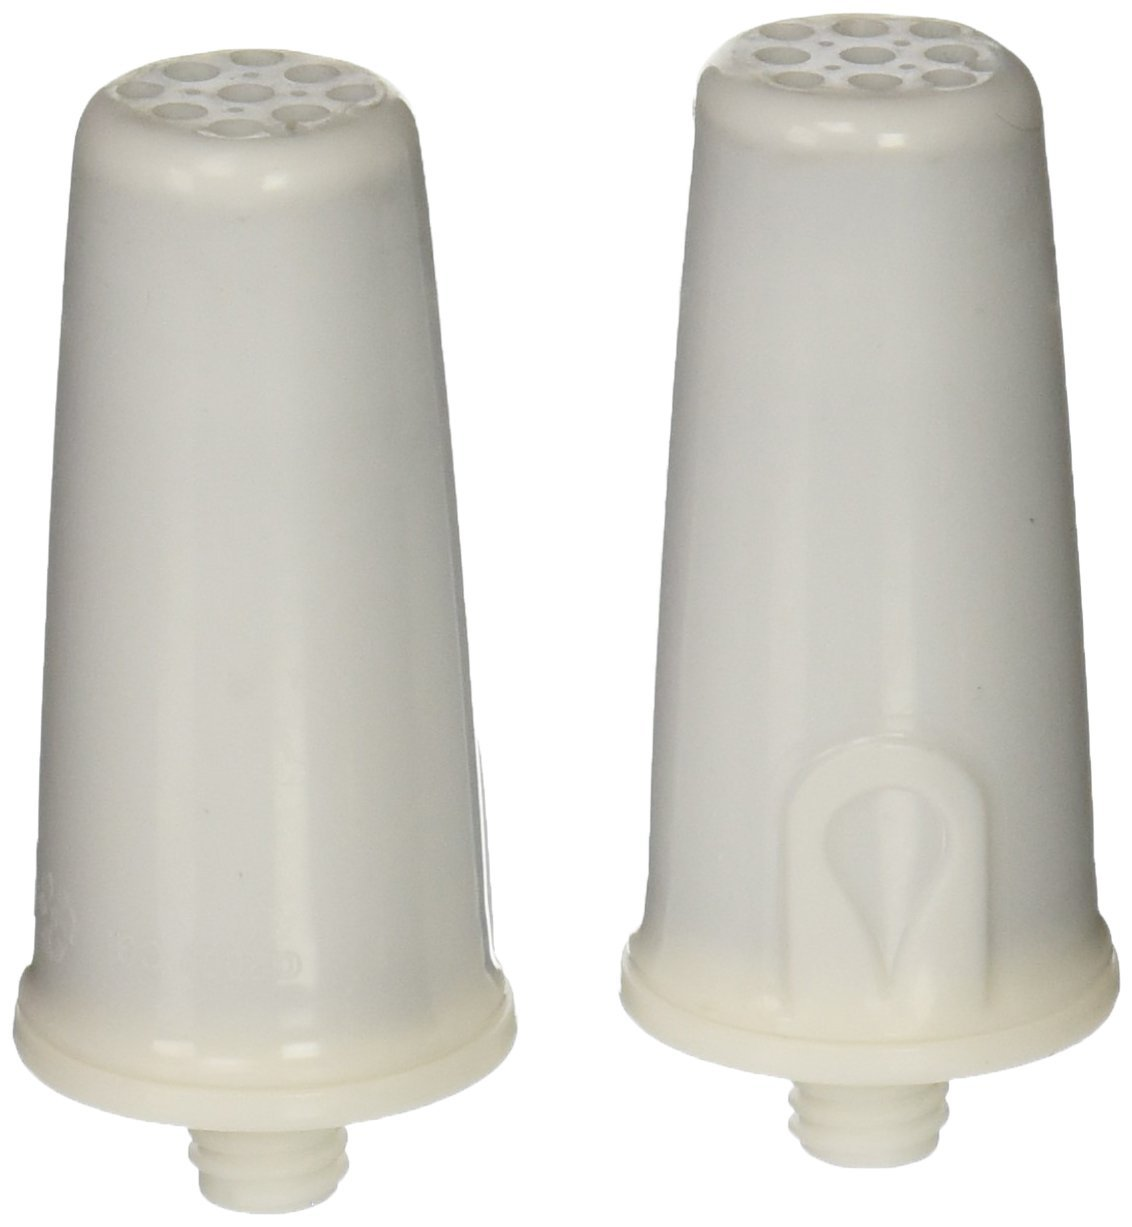 749 EZ Freeze Pure water filter refills, Pack of 2